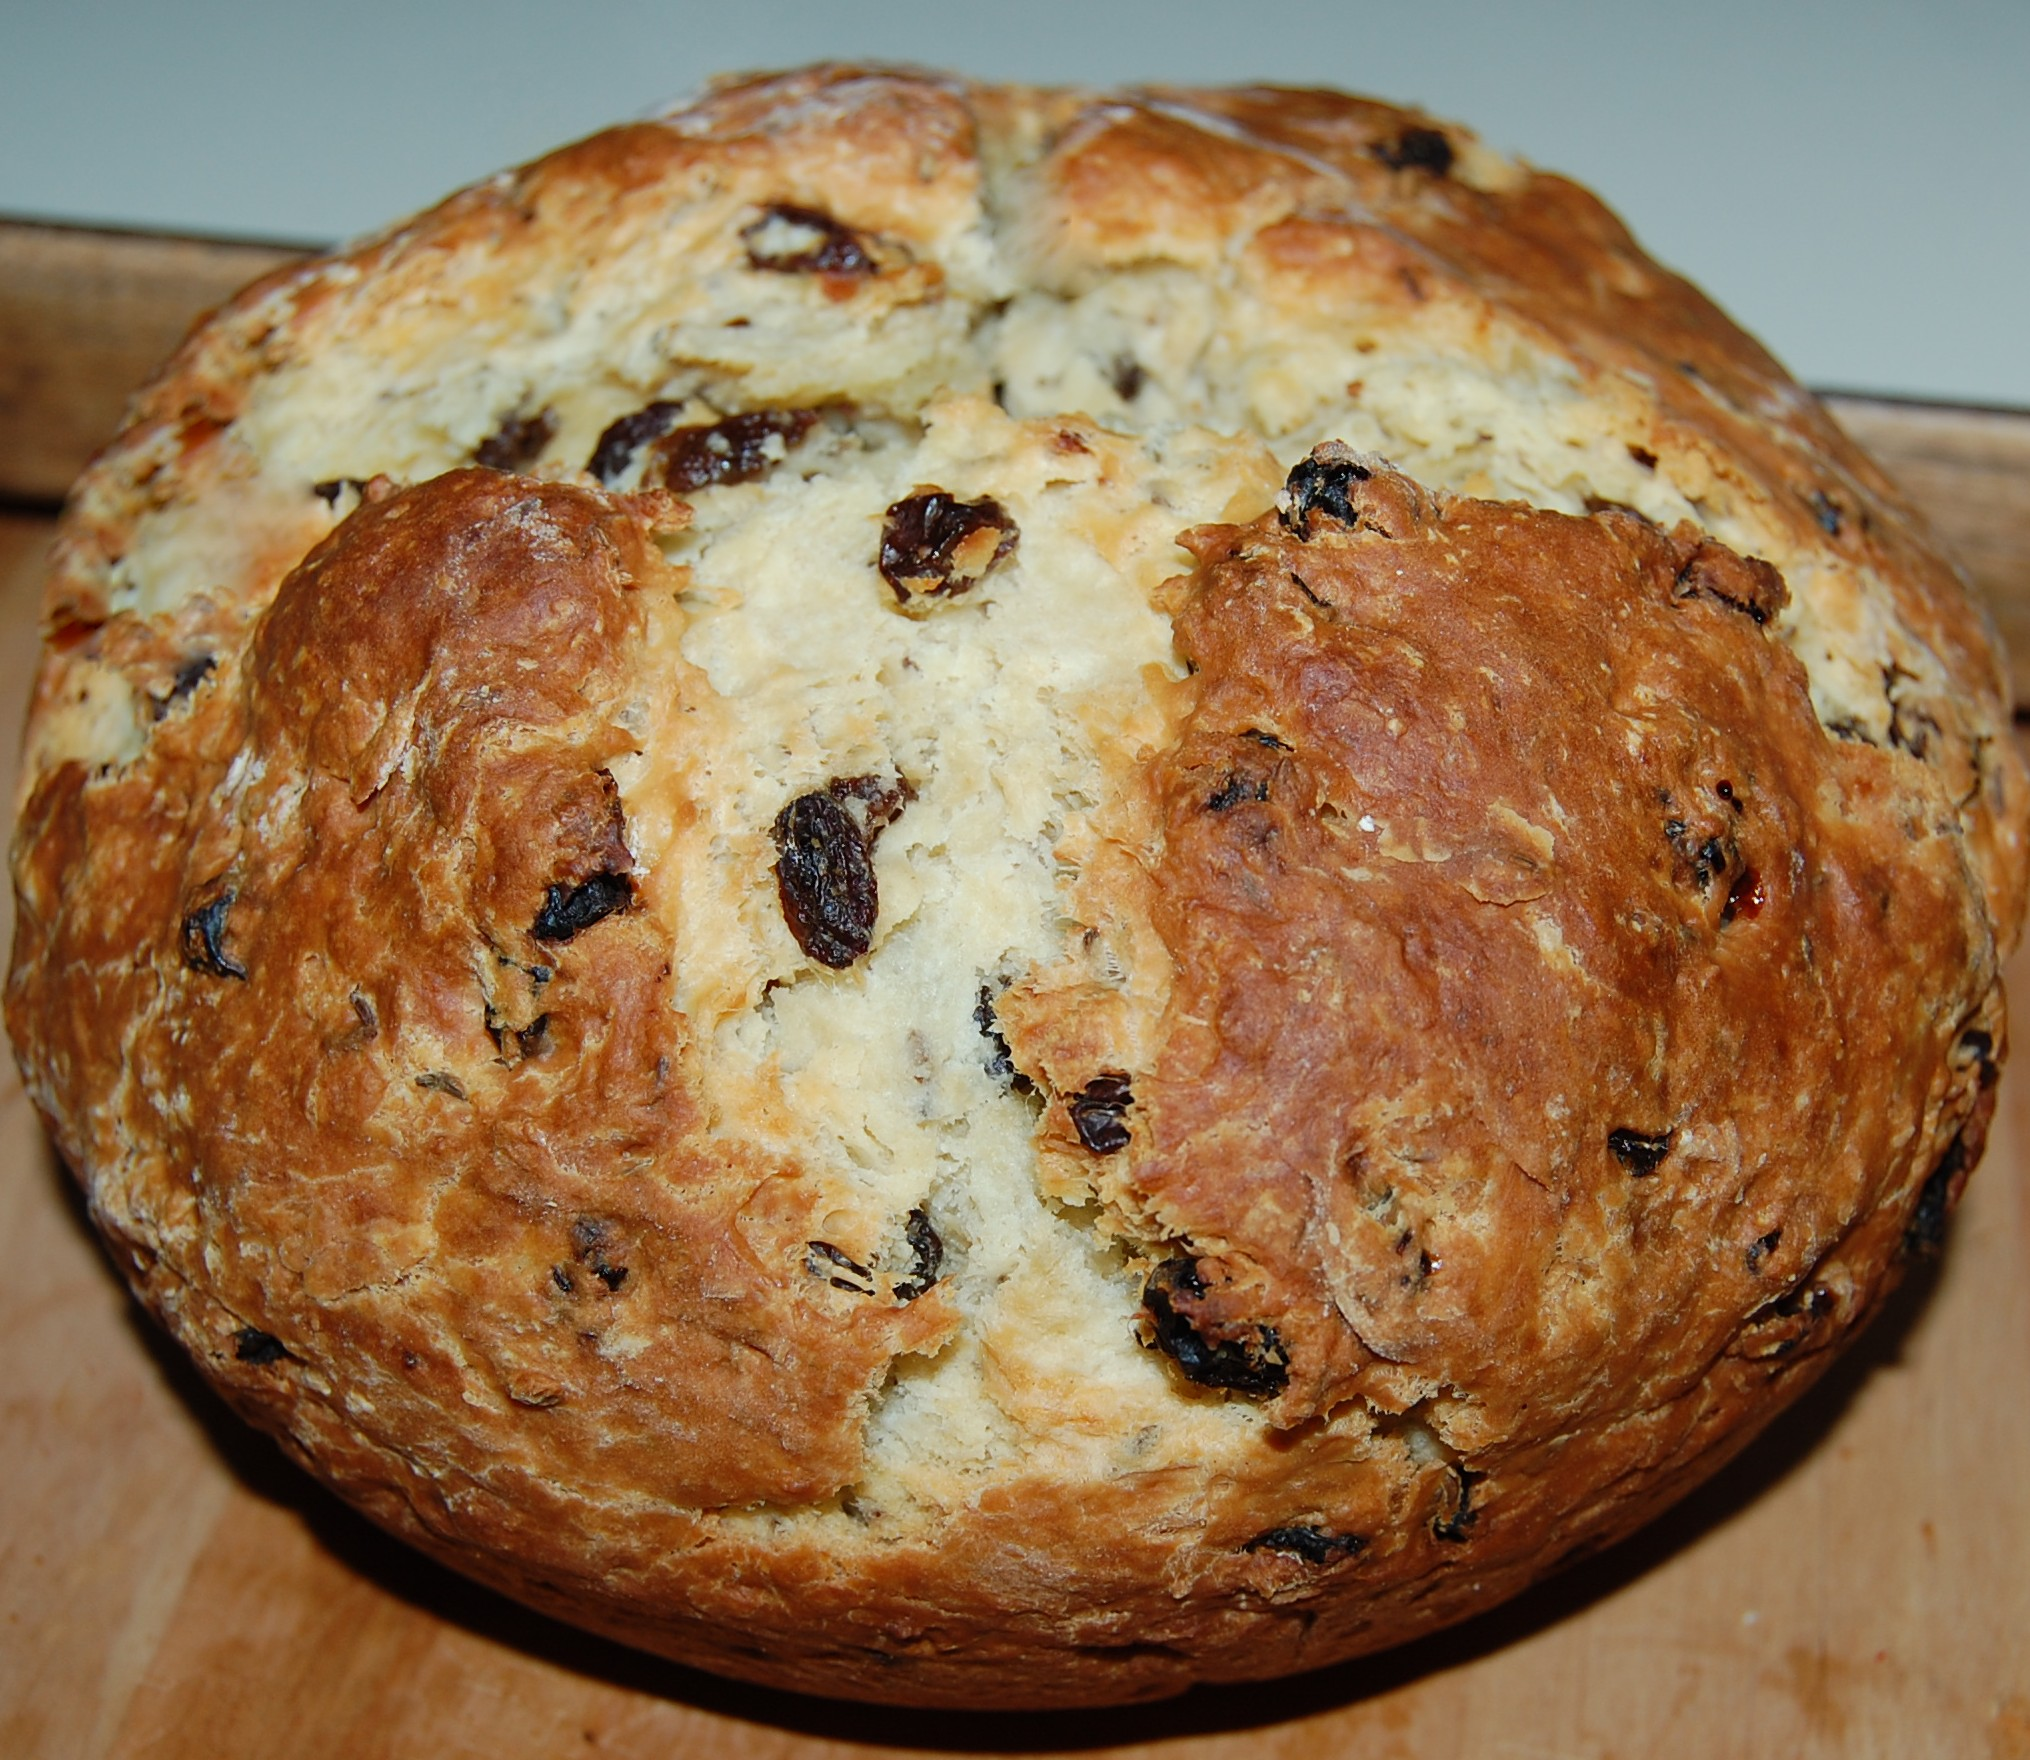 Irish Soda Bread Food Related Keywords & Suggestions - Irish Soda ...